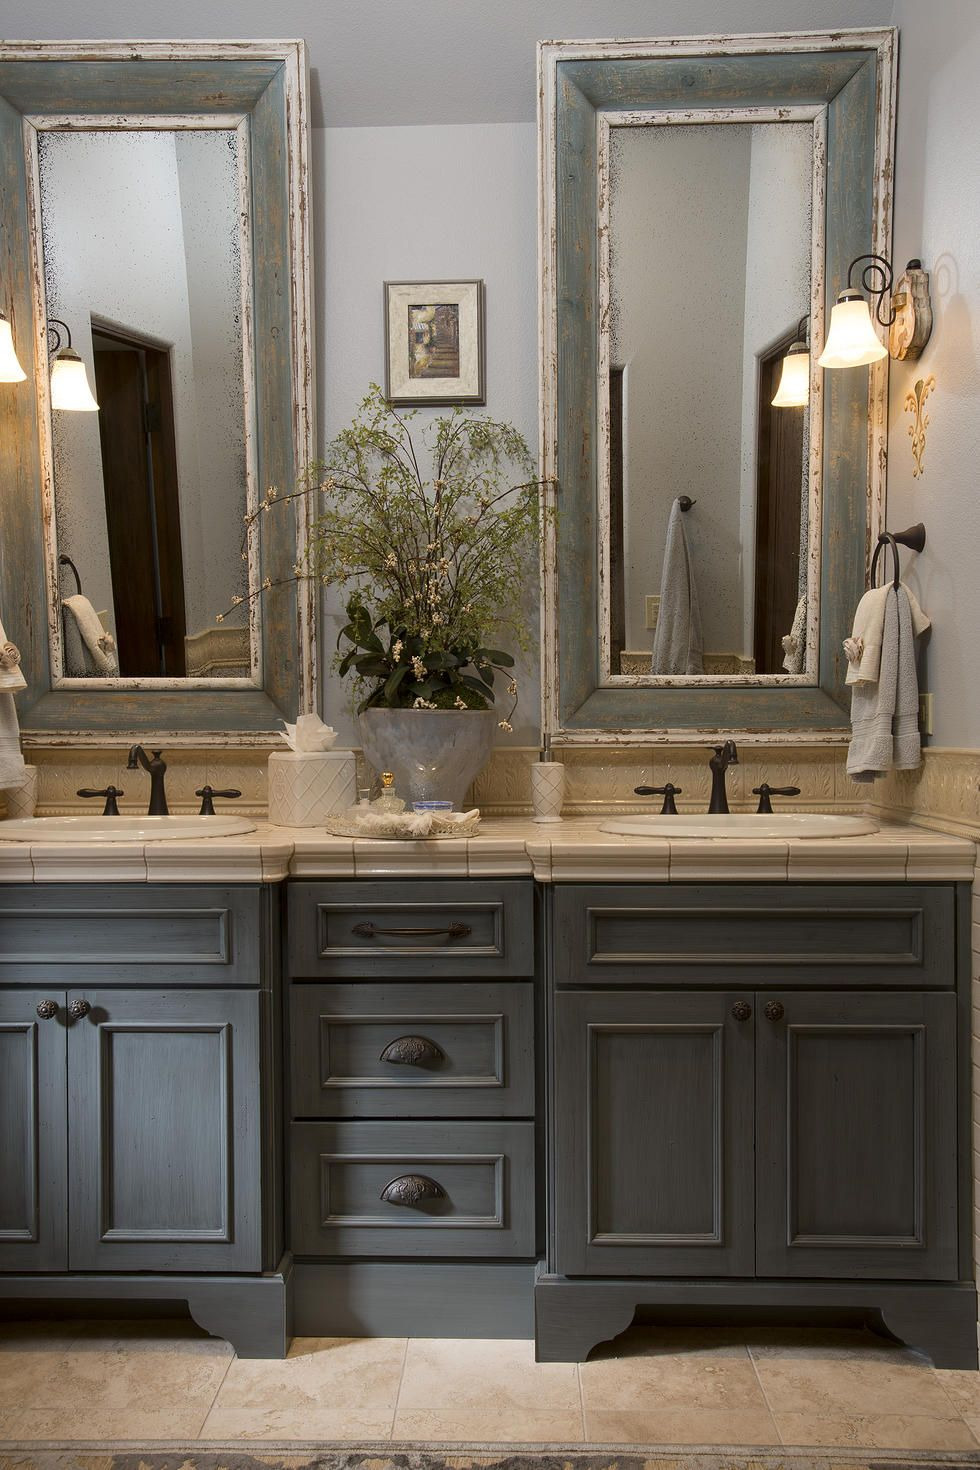 Country French Bathroom Decor Fresh French Country Bathroom Gray Washed Cabinets Mirrors with